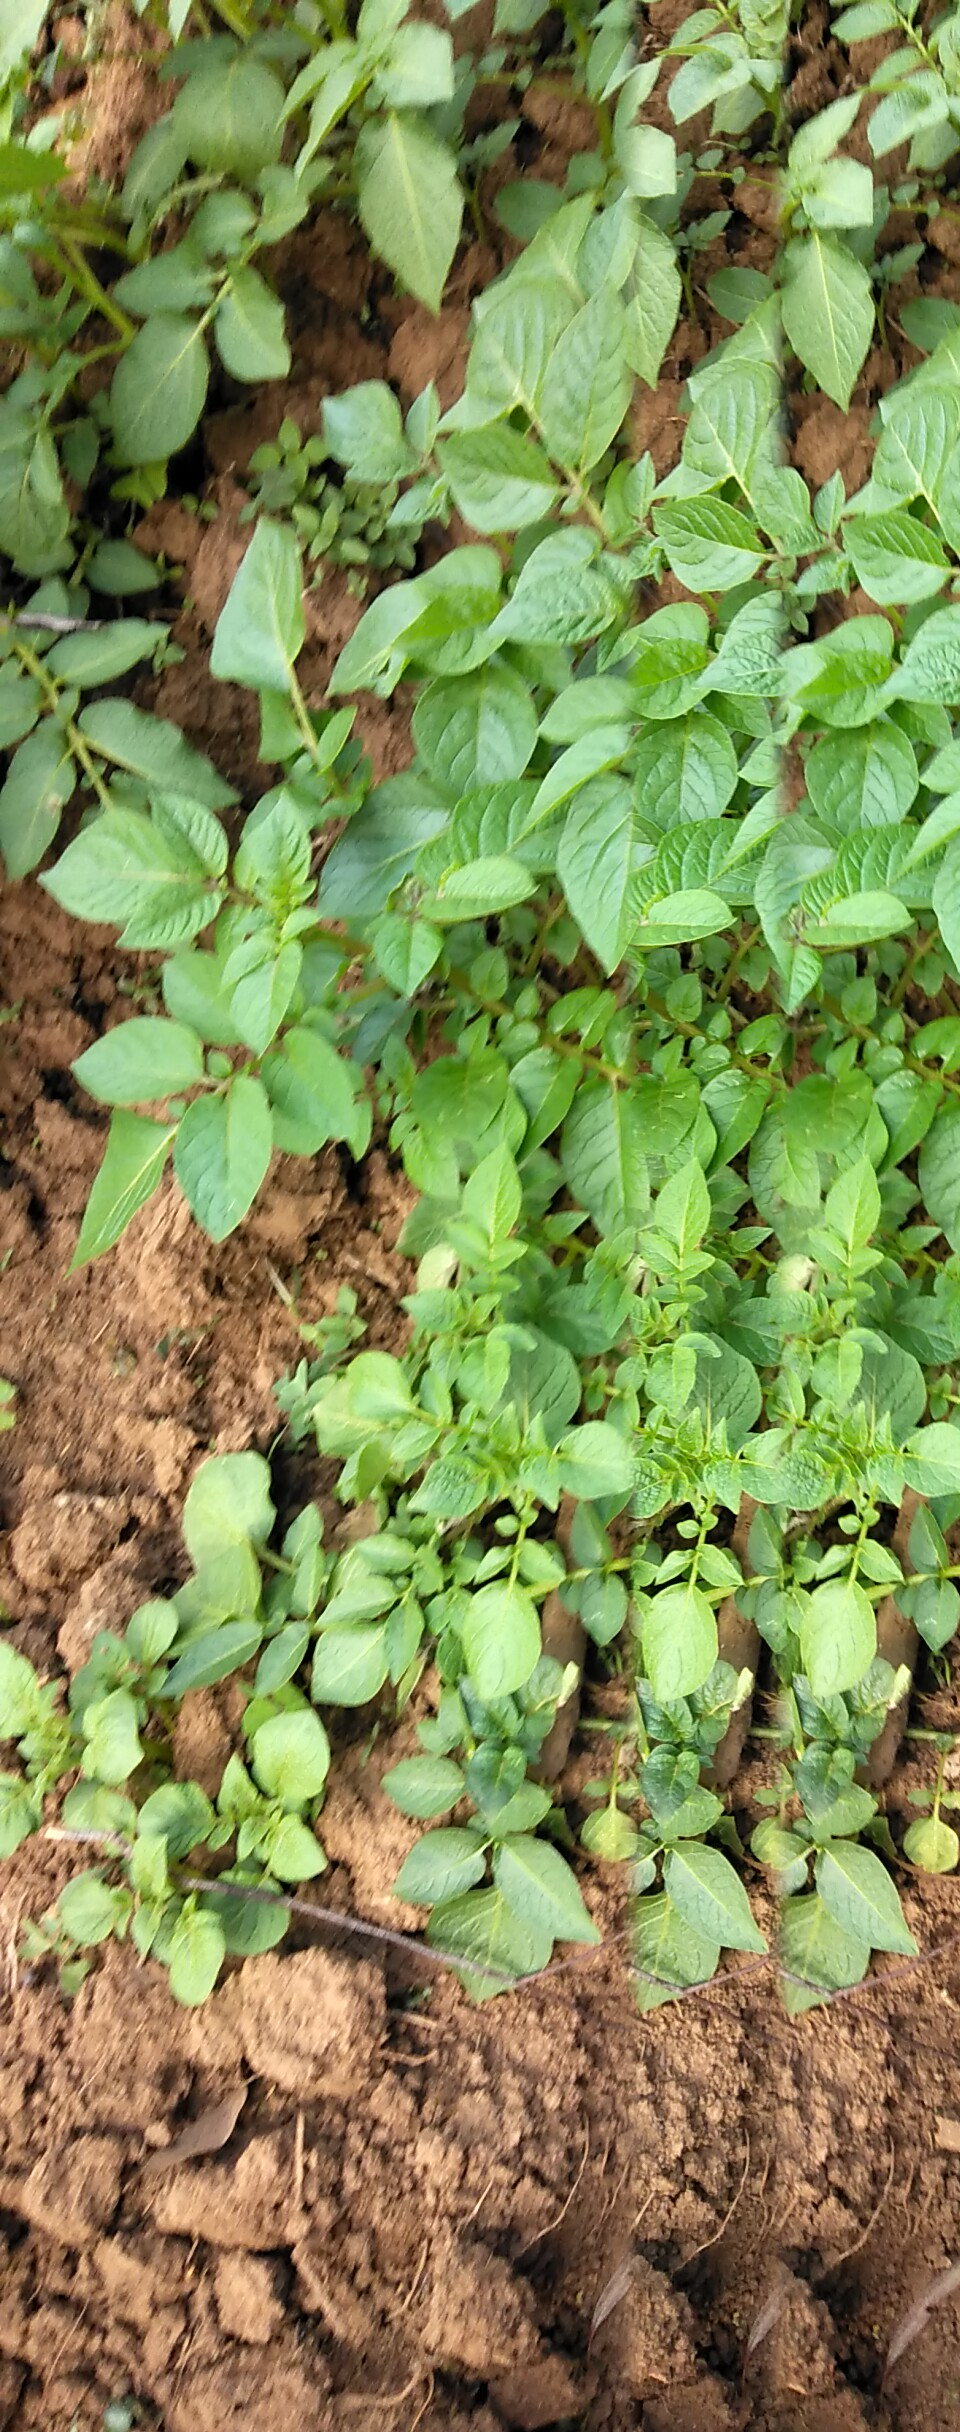 Earthing up in potatoes